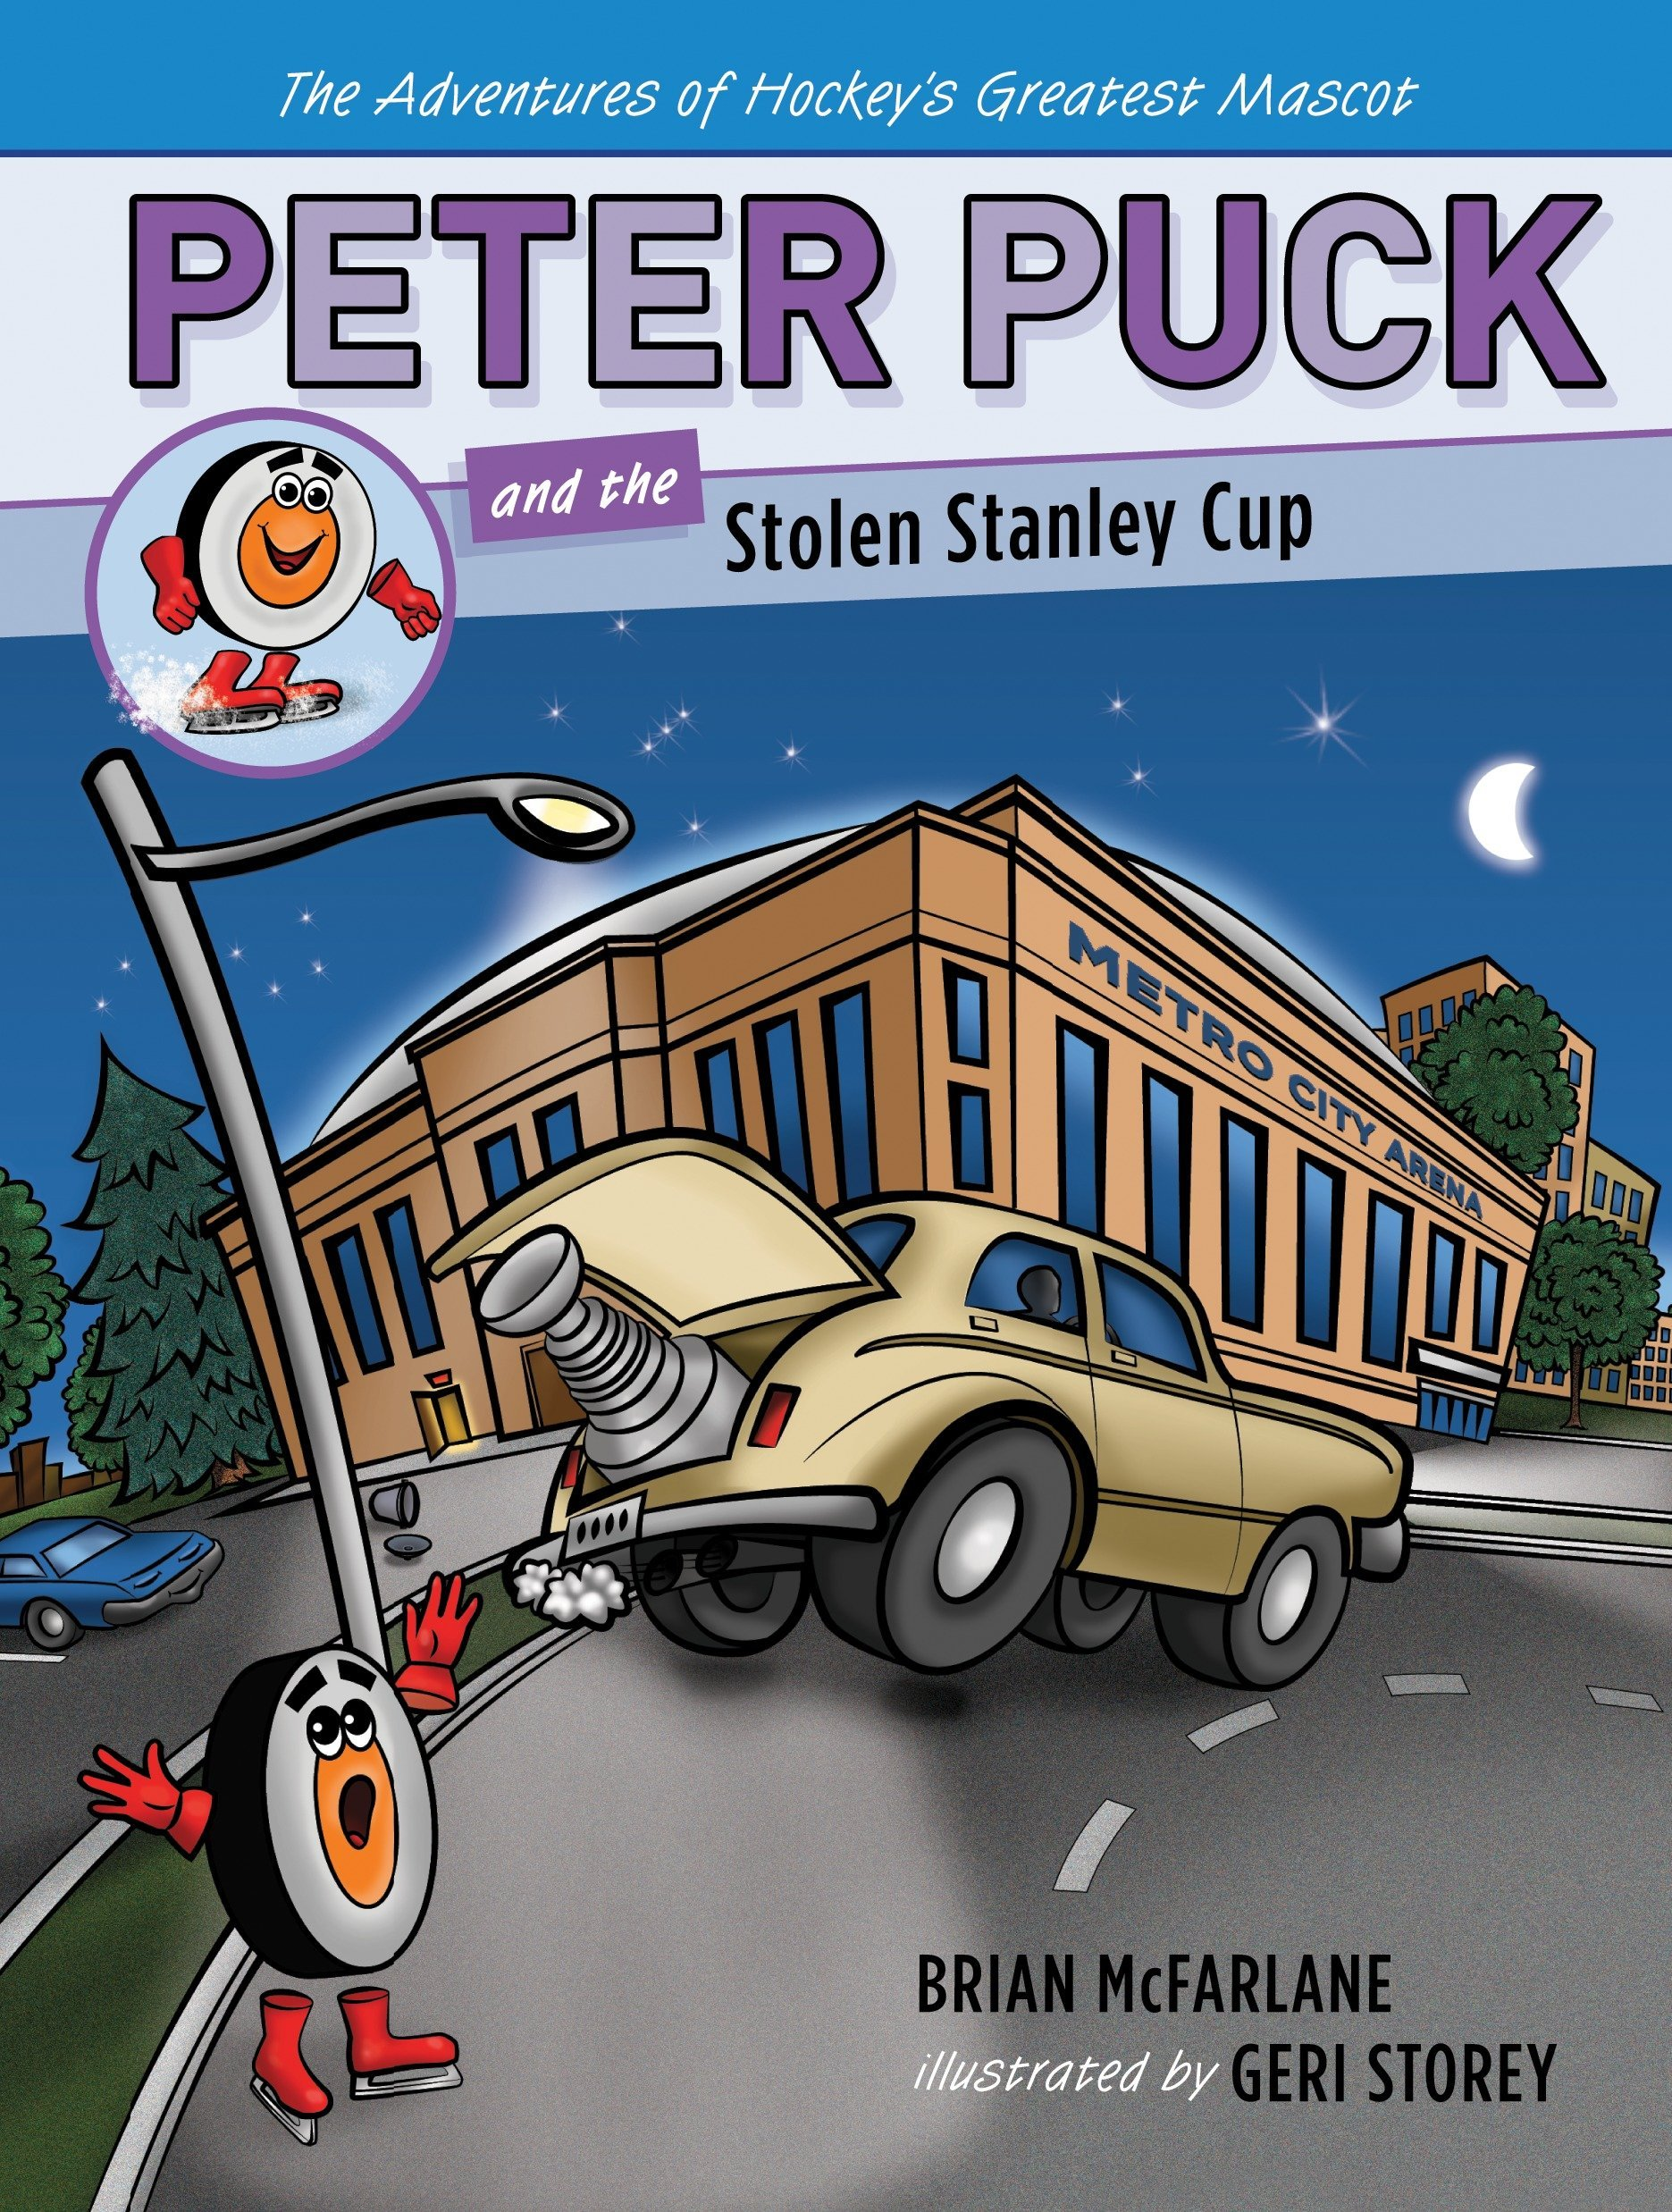 Peter Puck and the Stolen Stanley Cup (Adv. Hockey's Greatest Mascot) ebook